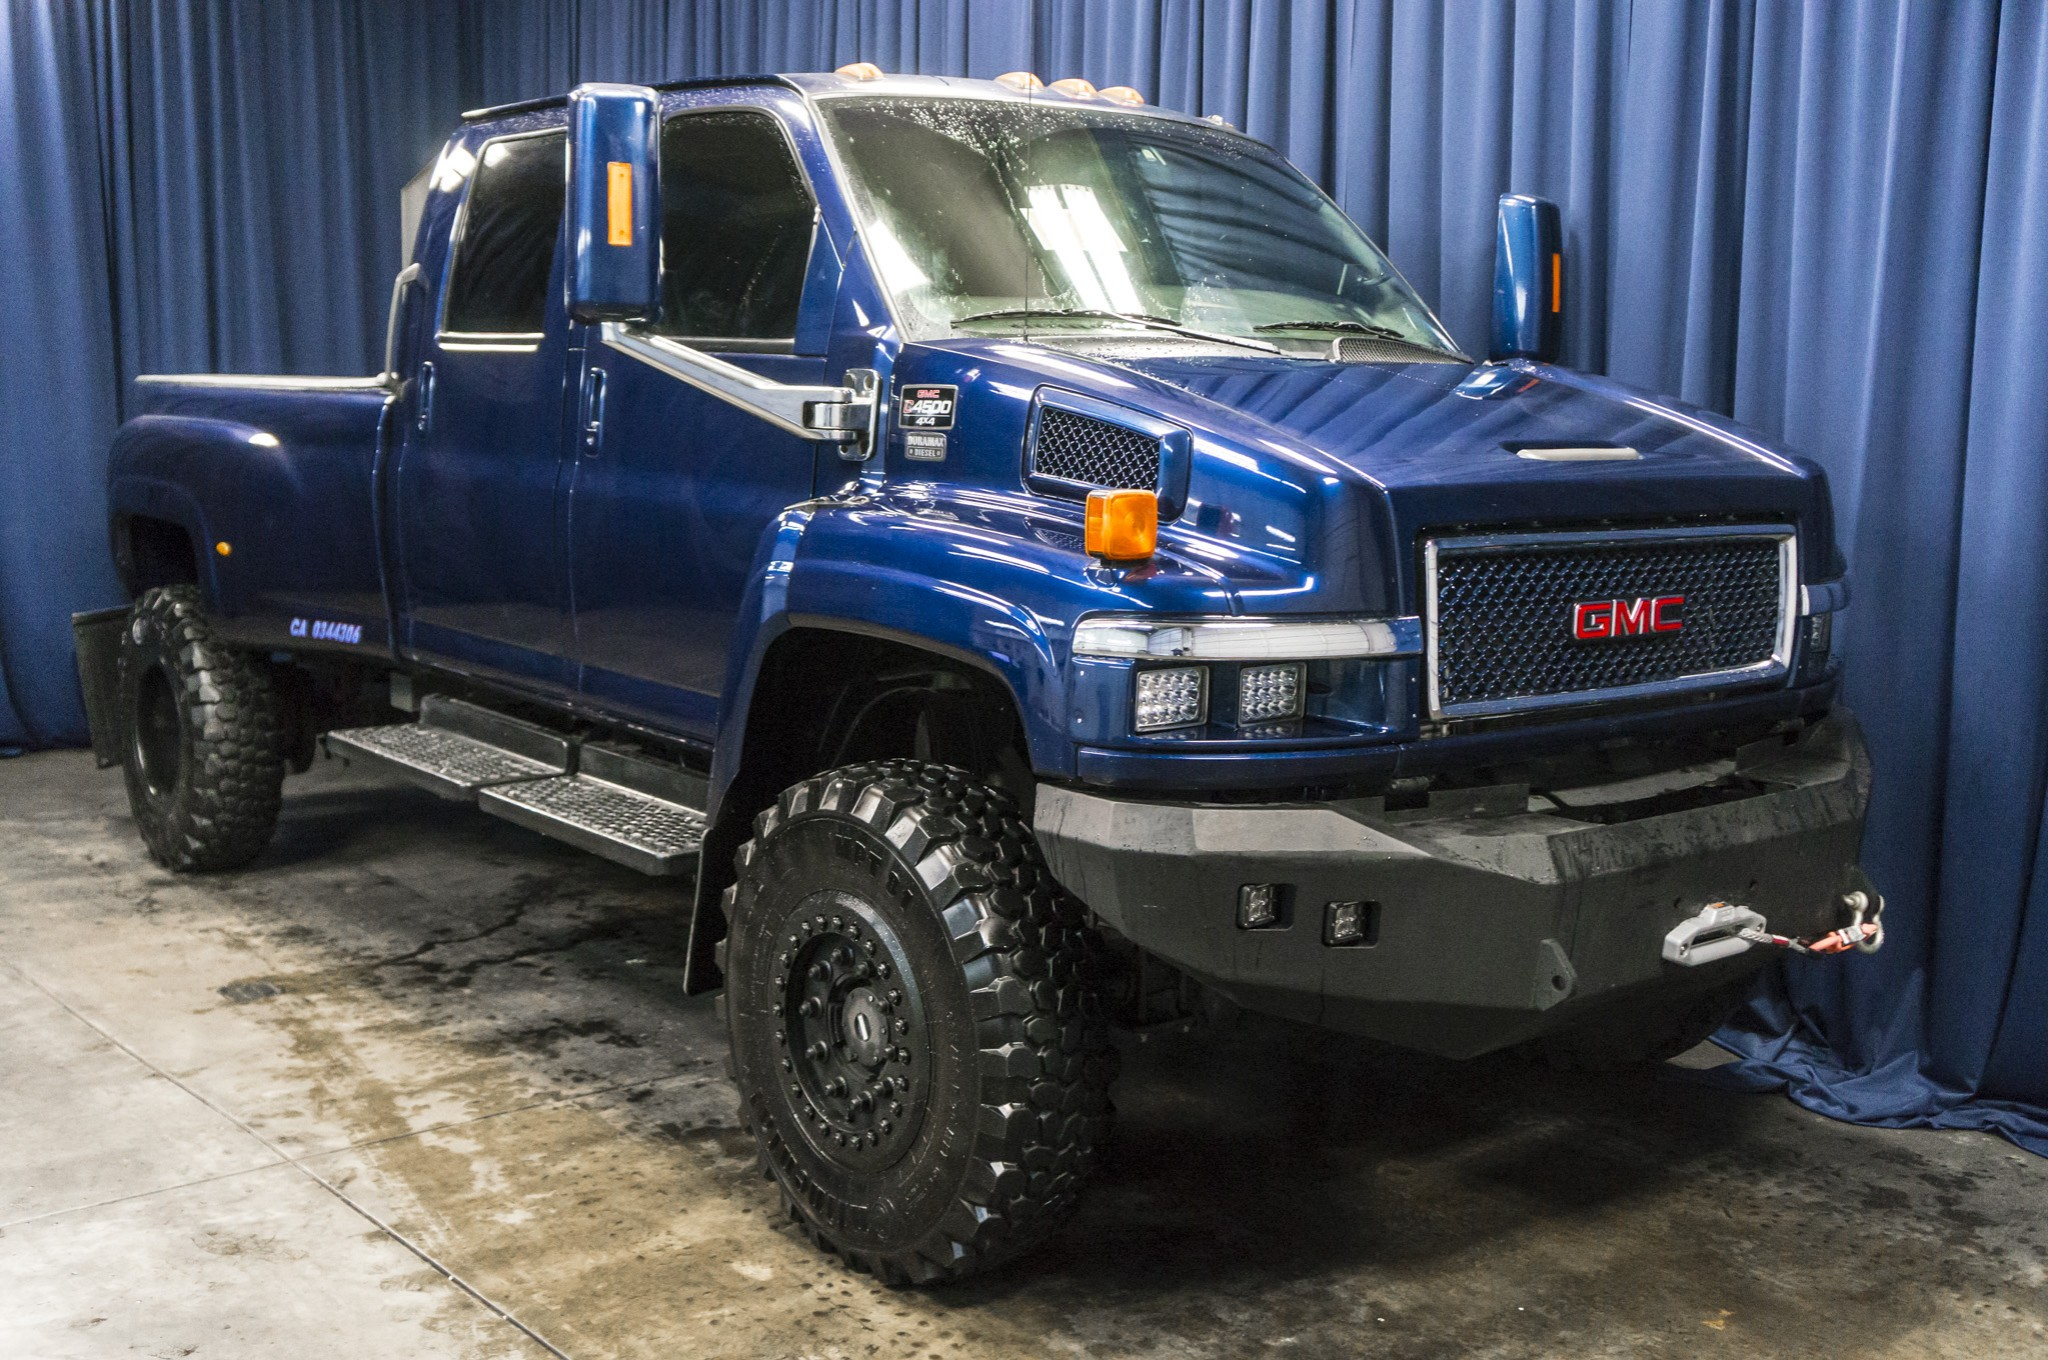 Gmc Duramax For Sale >> Used Lifted 2006 GMC C4500 4x4 Diesel Truck For Sale - 37021